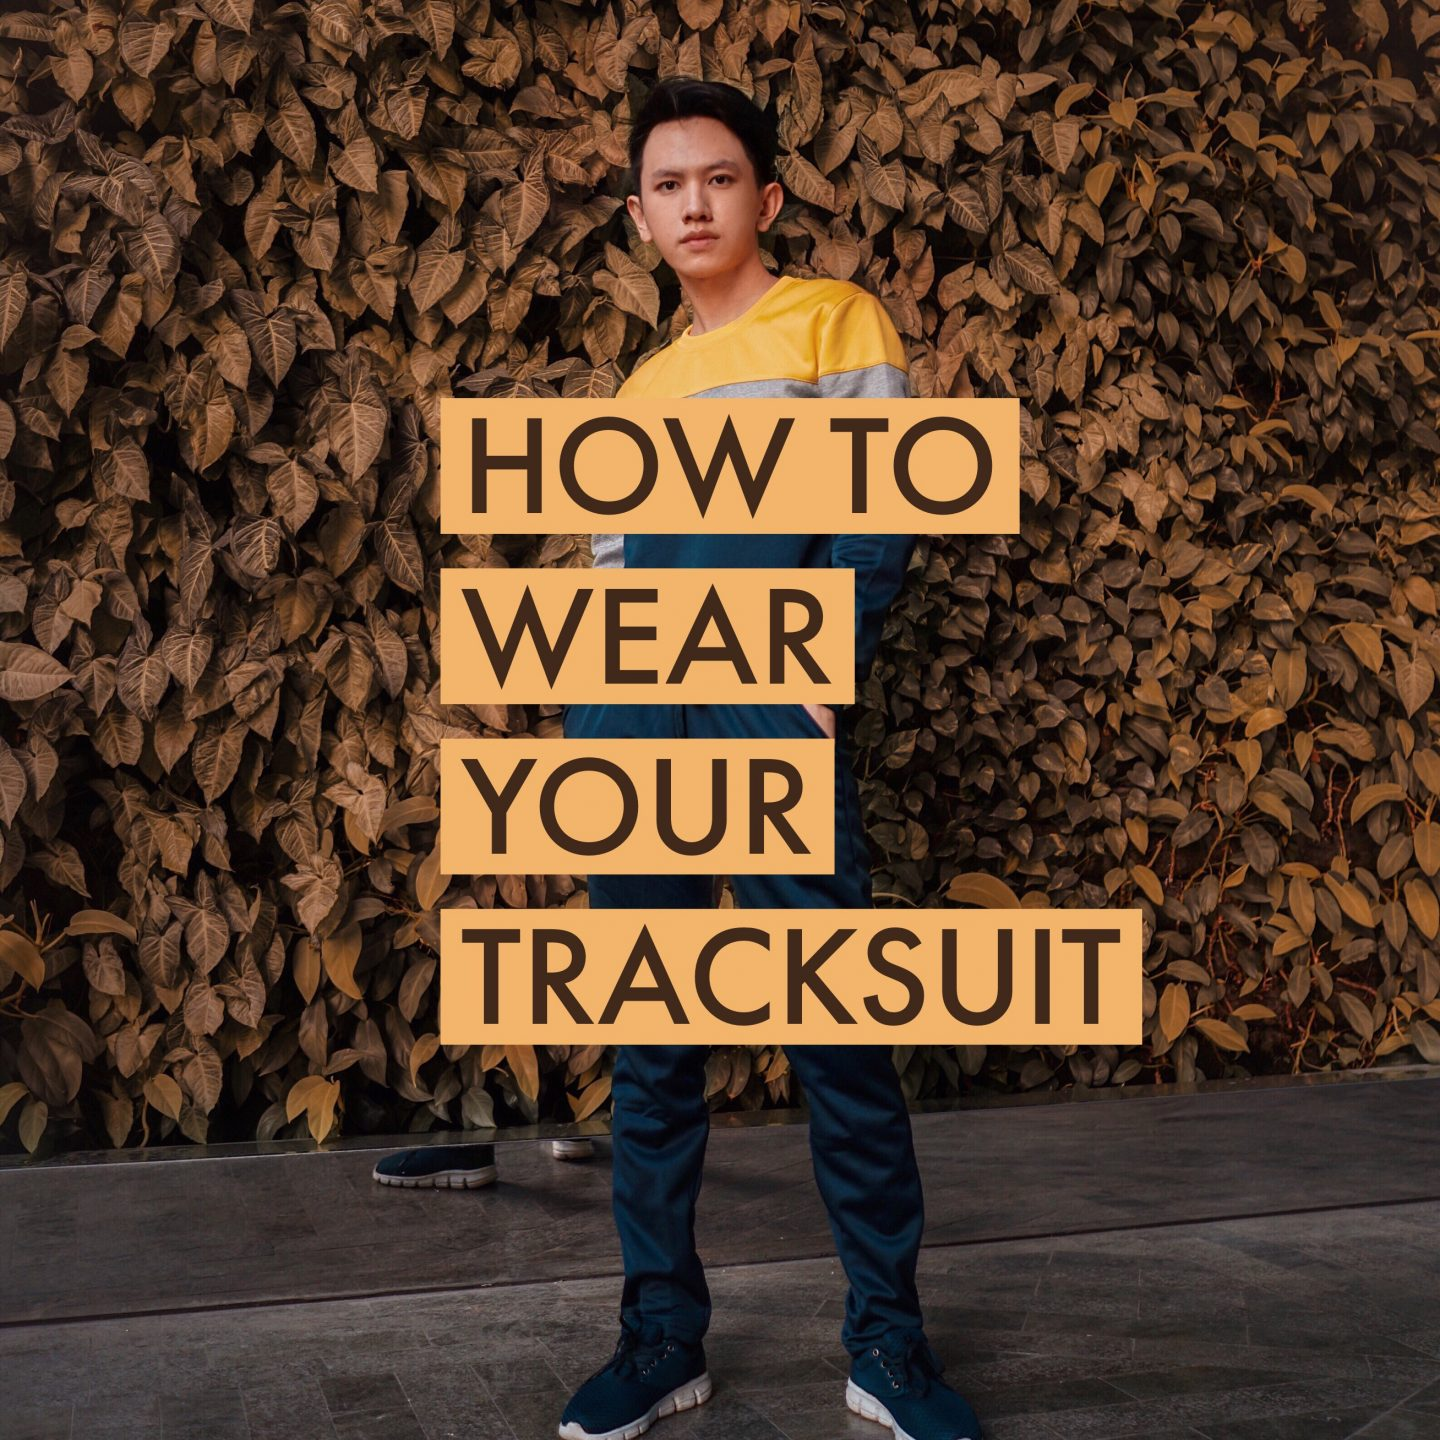 HOW TO WEAR YOUR TRACKSUIT